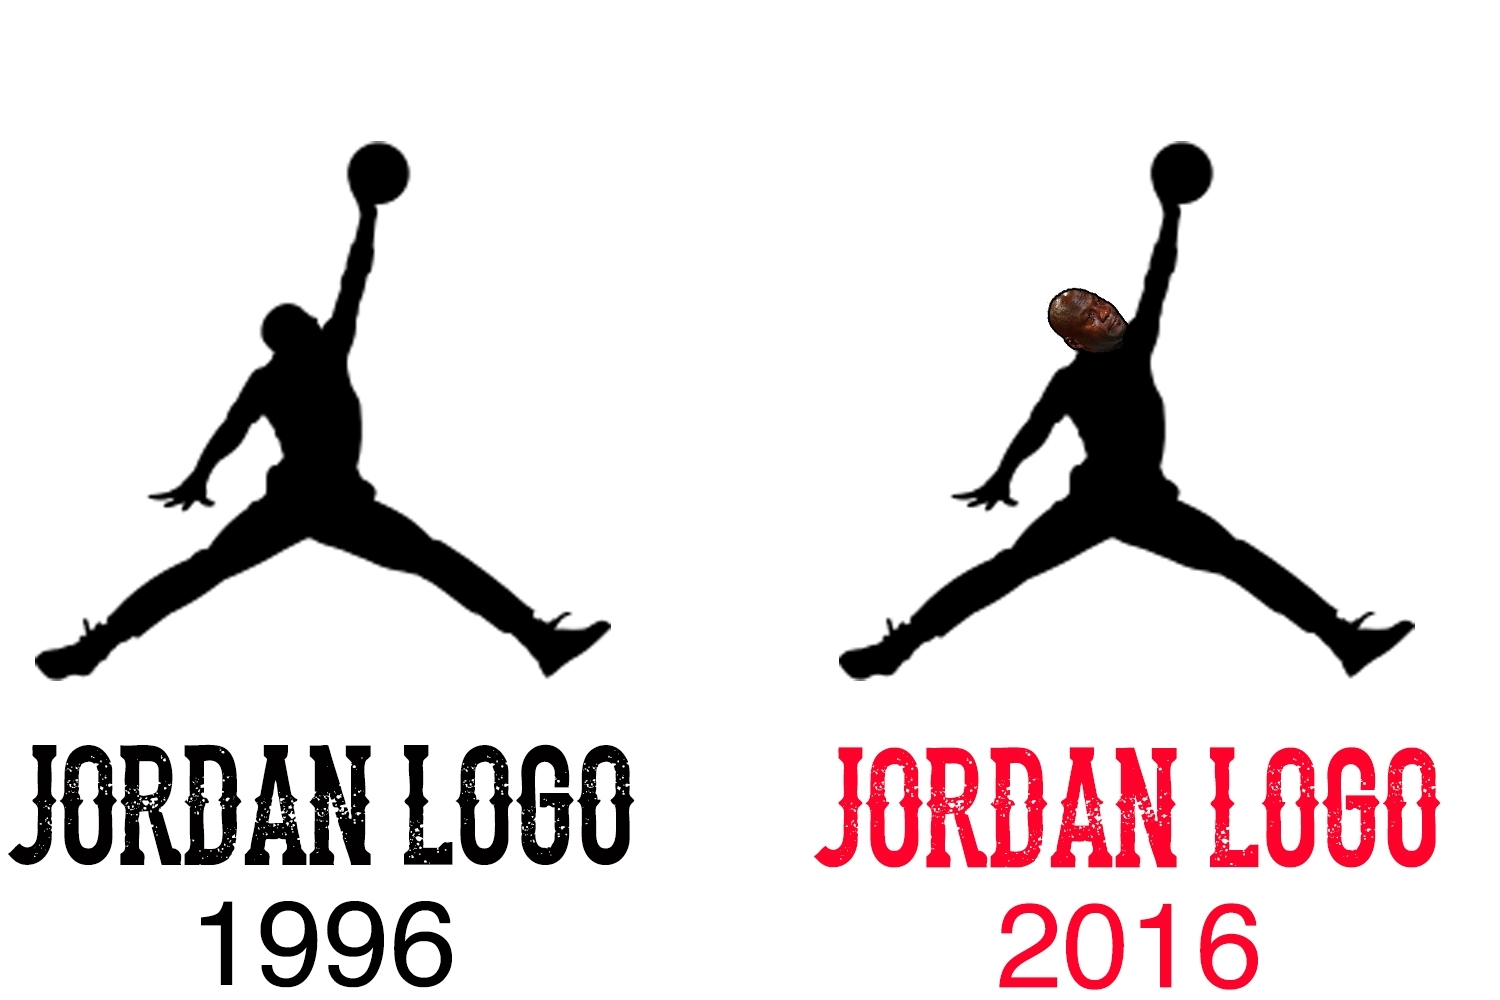 10 new picture of jordan symbol full hd 19201080 for pc background 10 finest and latest picture of jordan symbol for desktop computer with full hd 1080p 1920 1080 free download voltagebd Image collections